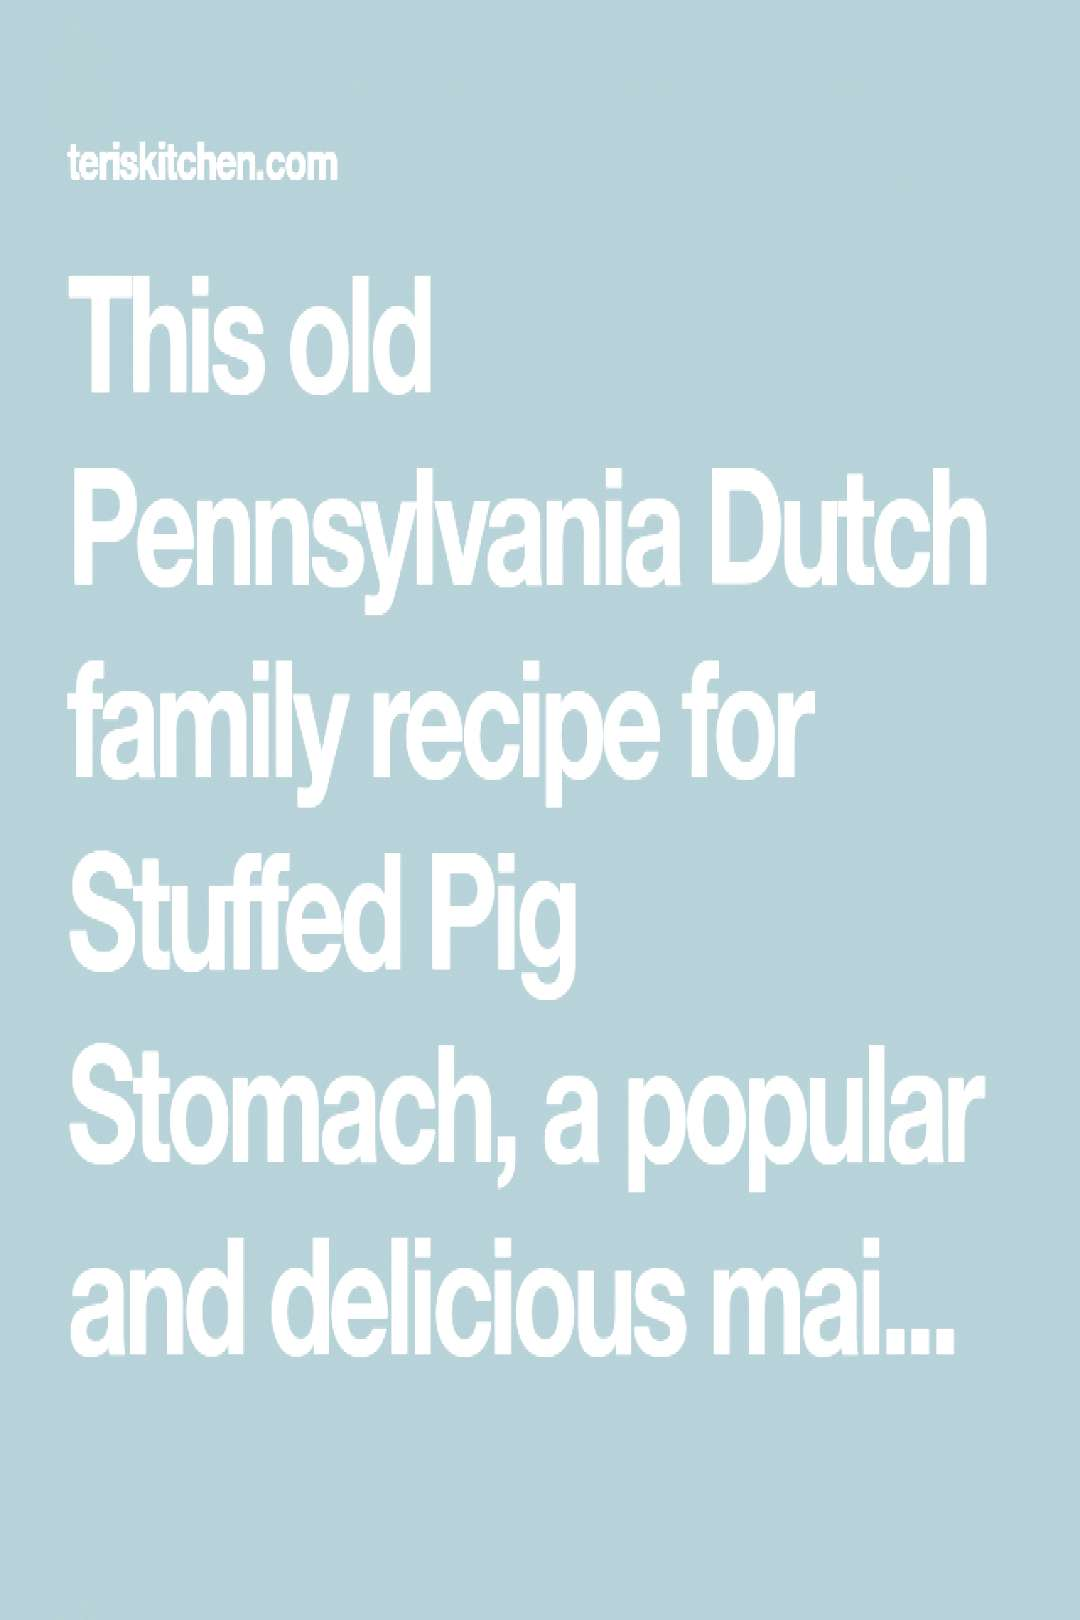 This old Pennsylvania Dutch family recipe for Stuffed Pig Stomach, a popular and... - -